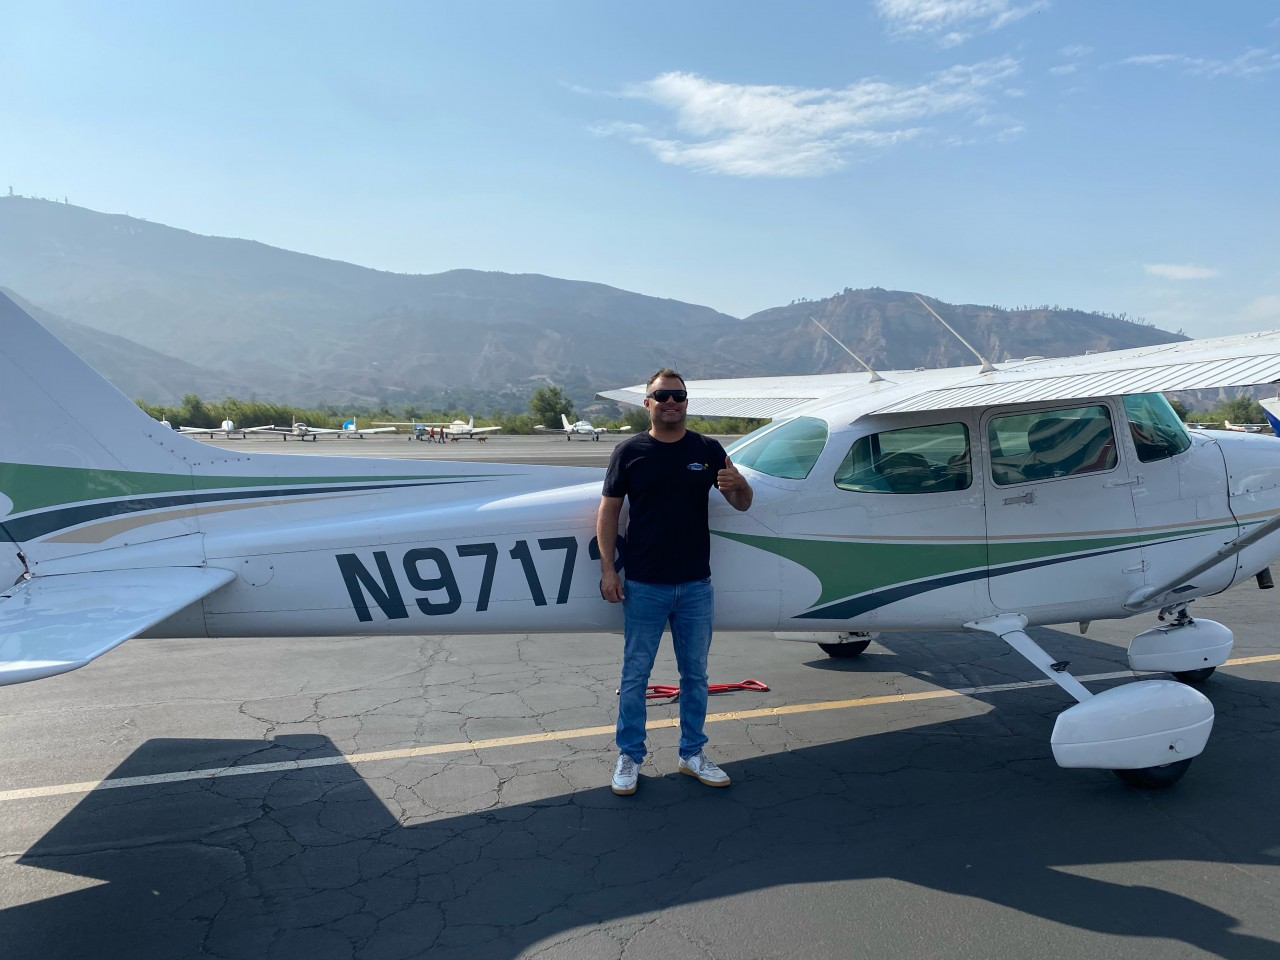 First Solo - Dave Vogt